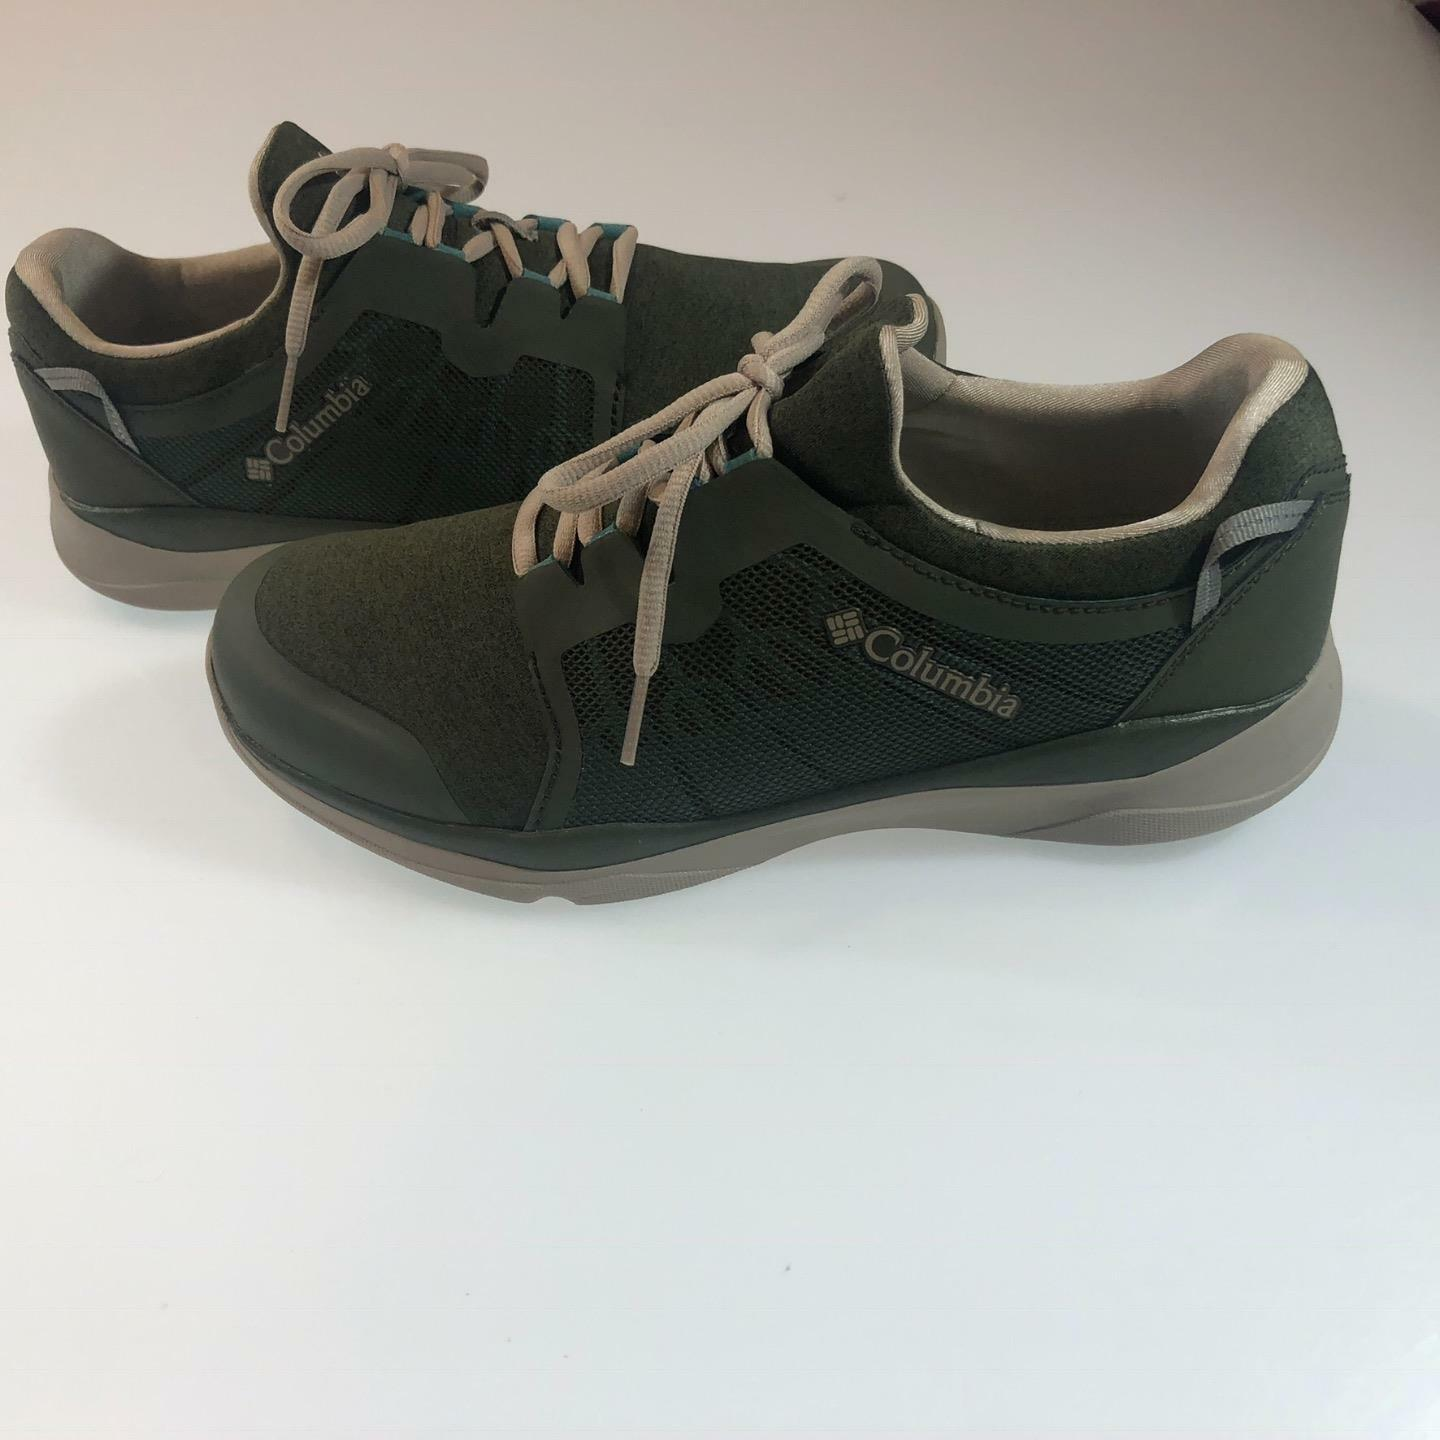 Columbia Donna ATS Trail LF92 Shoes size 10 Nori/Teal Lightweight Sneaker